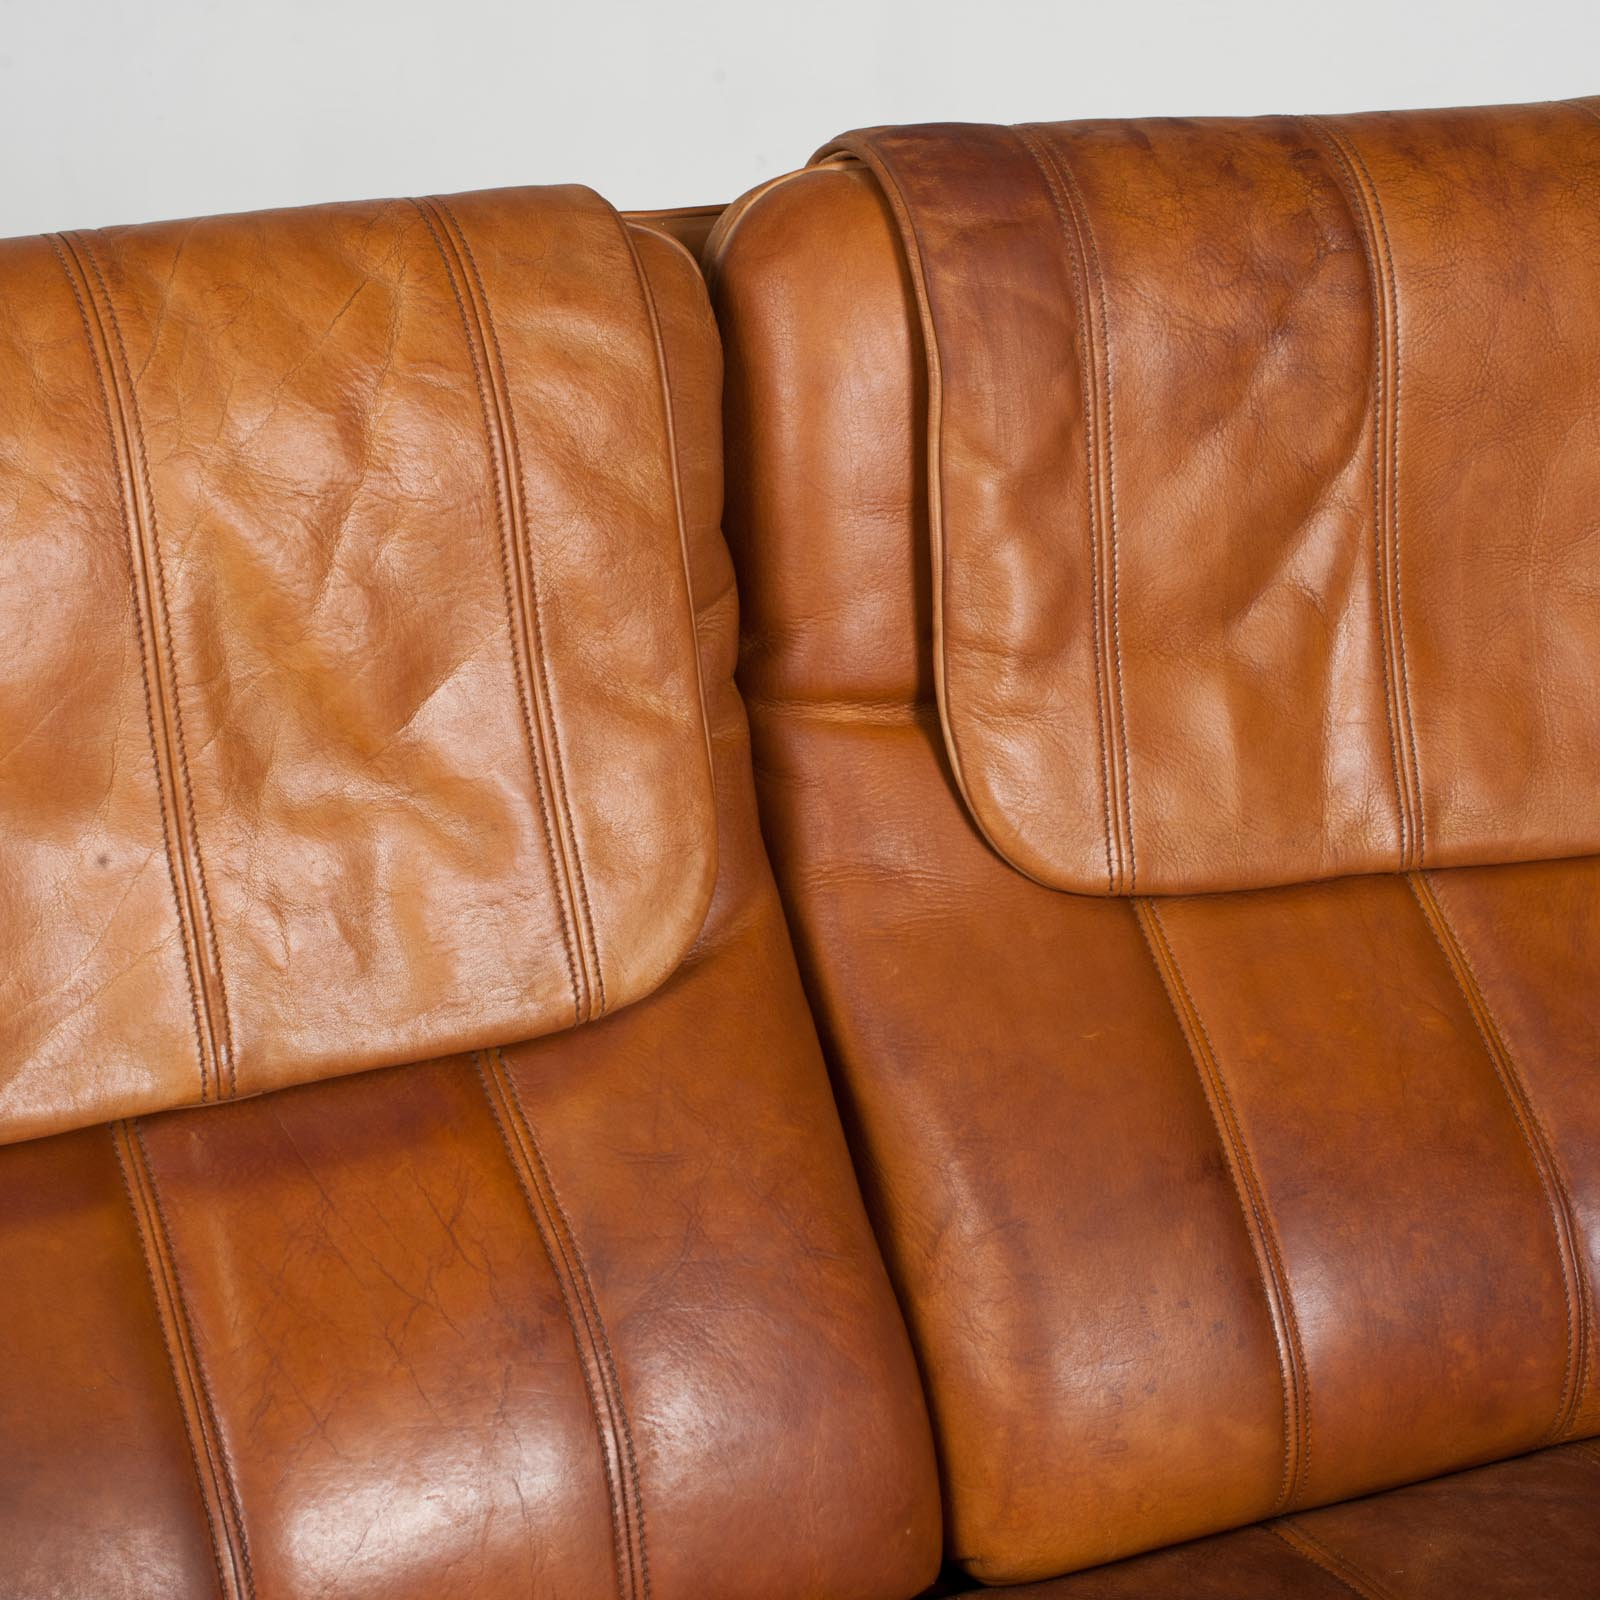 2 Seat Sofa By De Sede In Tan Leather 1970s Switzerland 06